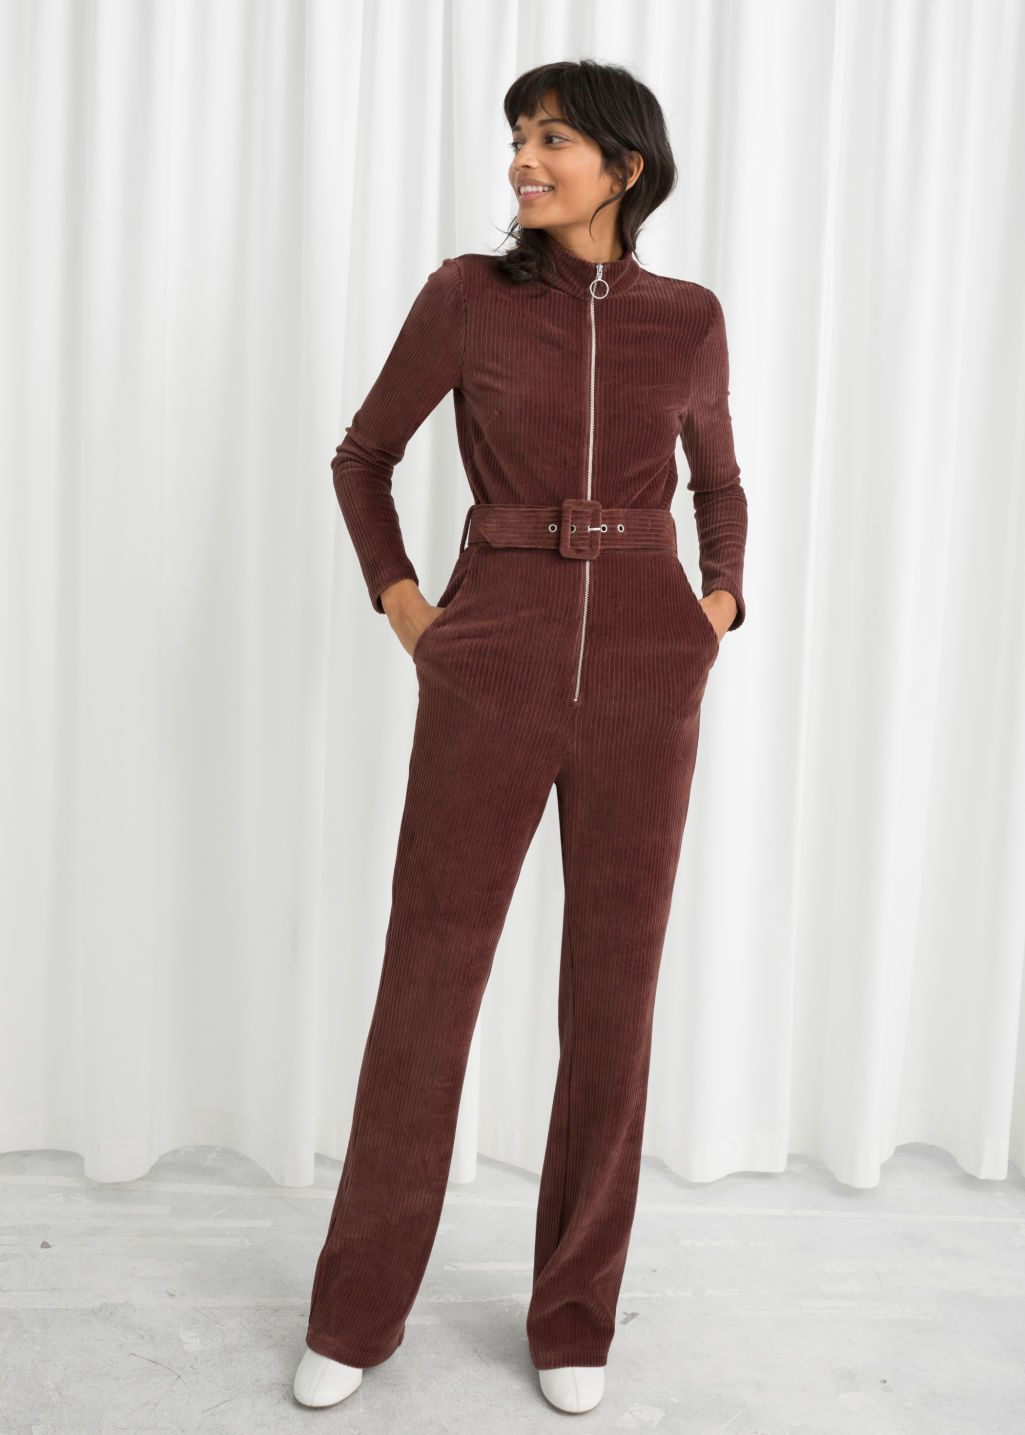 cea7c3b908f Belted Corduroy Jumpsuit - Burgundy - Jumpsuits   Playsuits -   Other  Stories